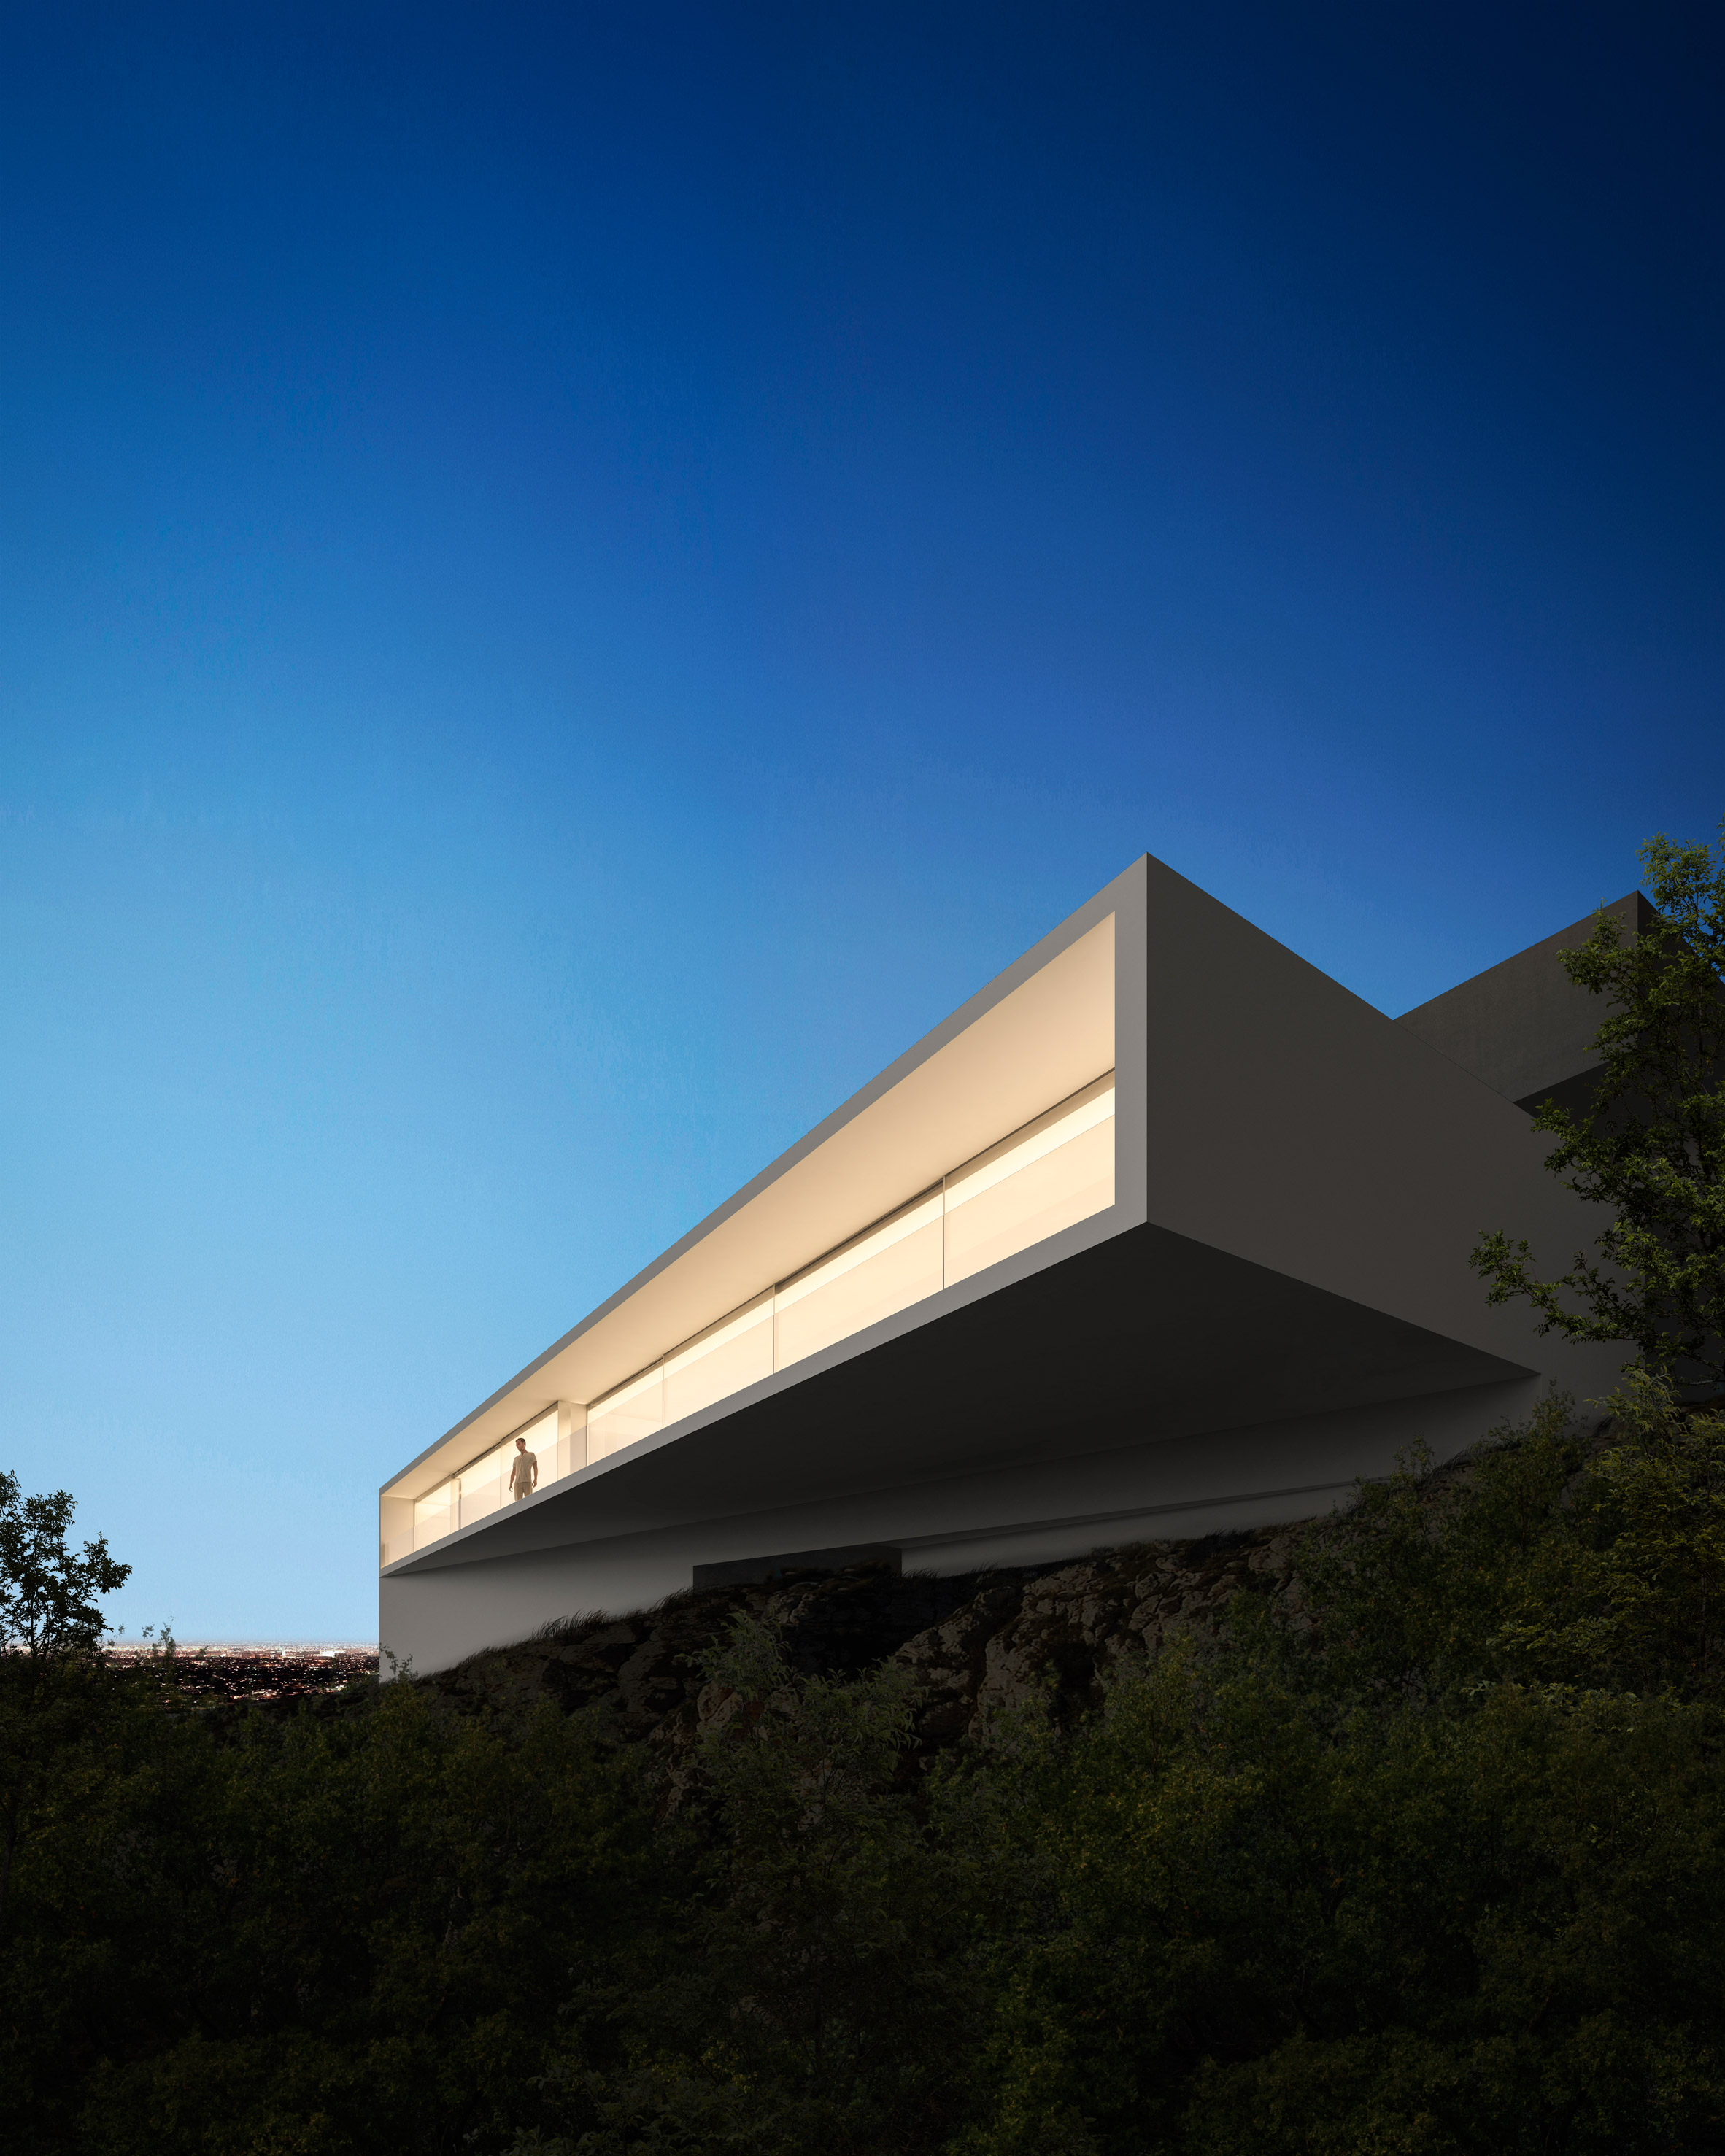 Minimal Hollywood house by Fran Silvestre Arquitectos juts ...